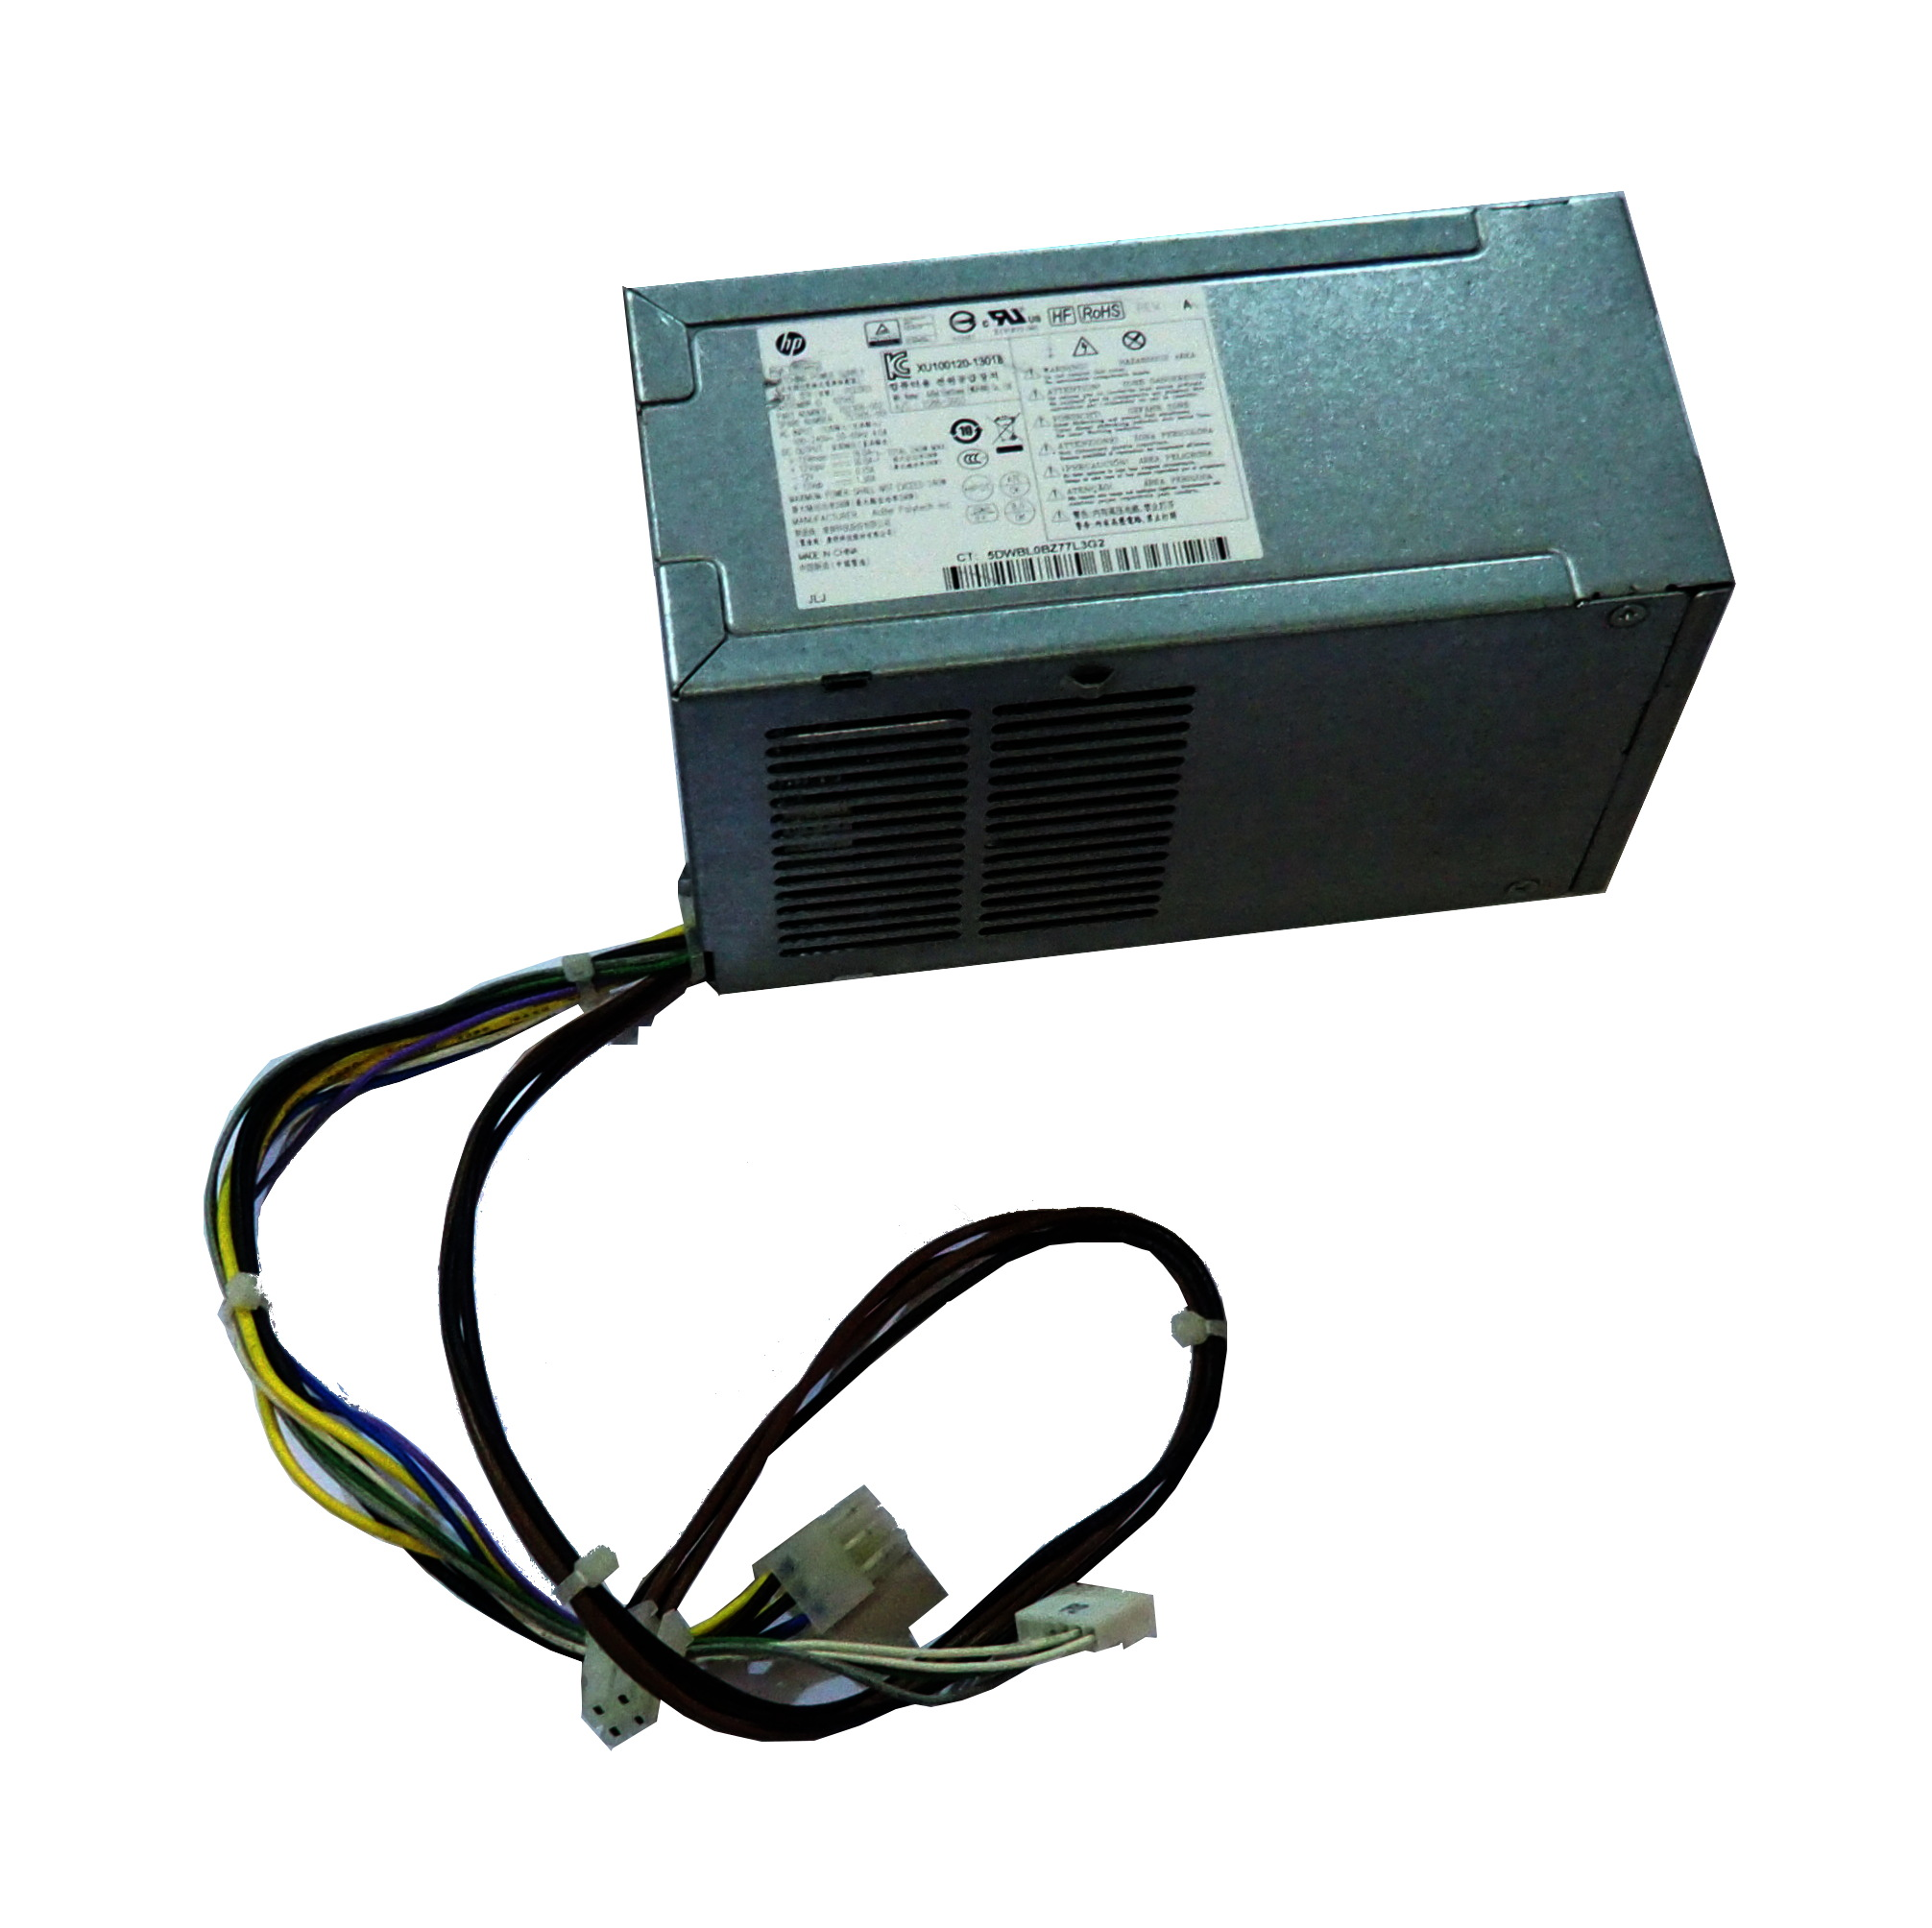 HP 751885-001 PCC003 240W Switching Power Supply- P/N: 702308-002